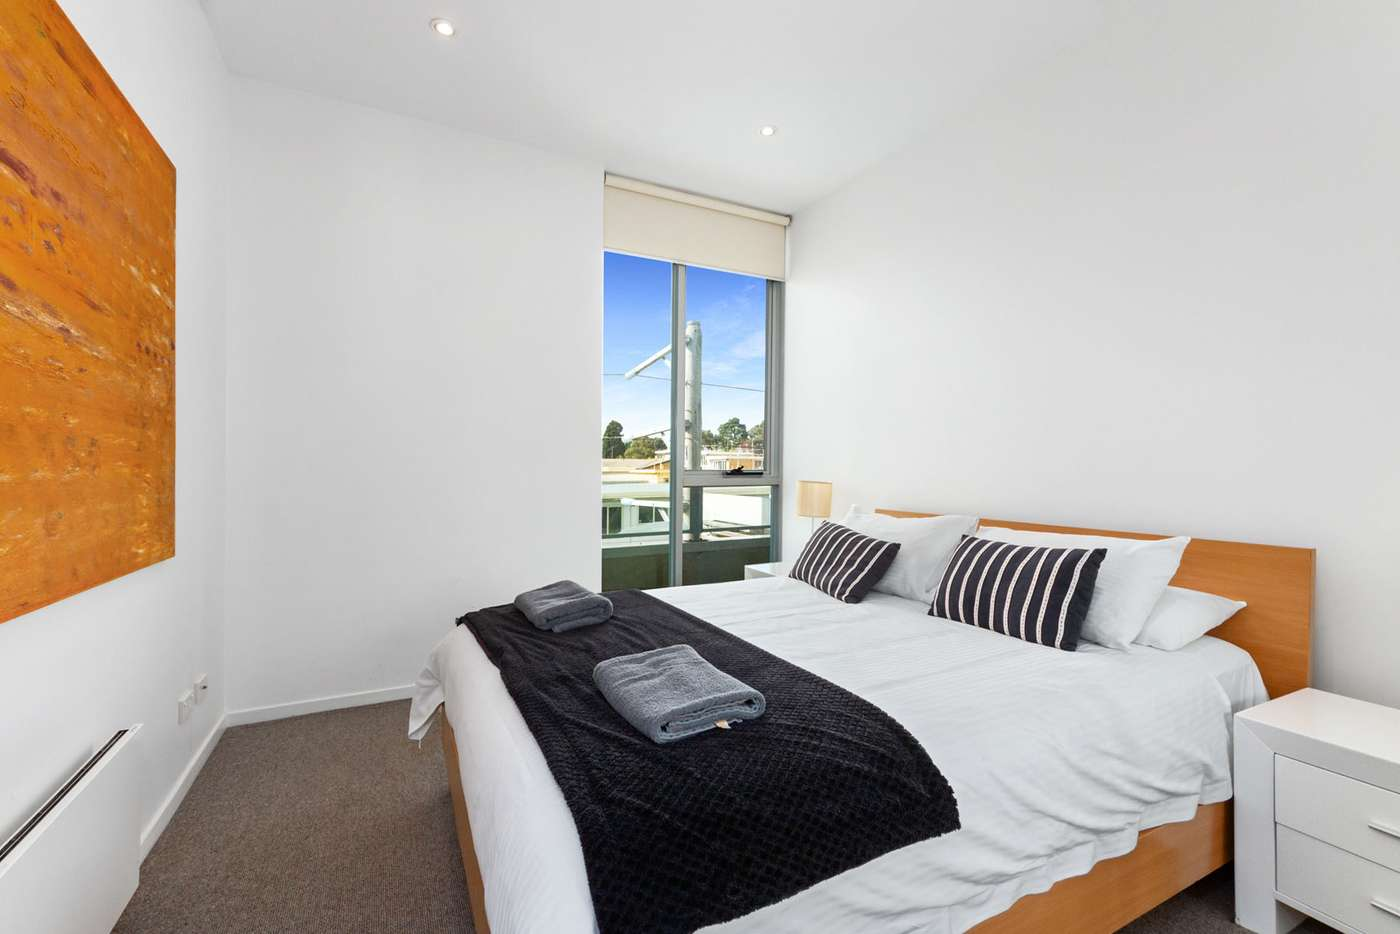 Seventh view of Homely apartment listing, 39/220 Barkly Street, St Kilda VIC 3182